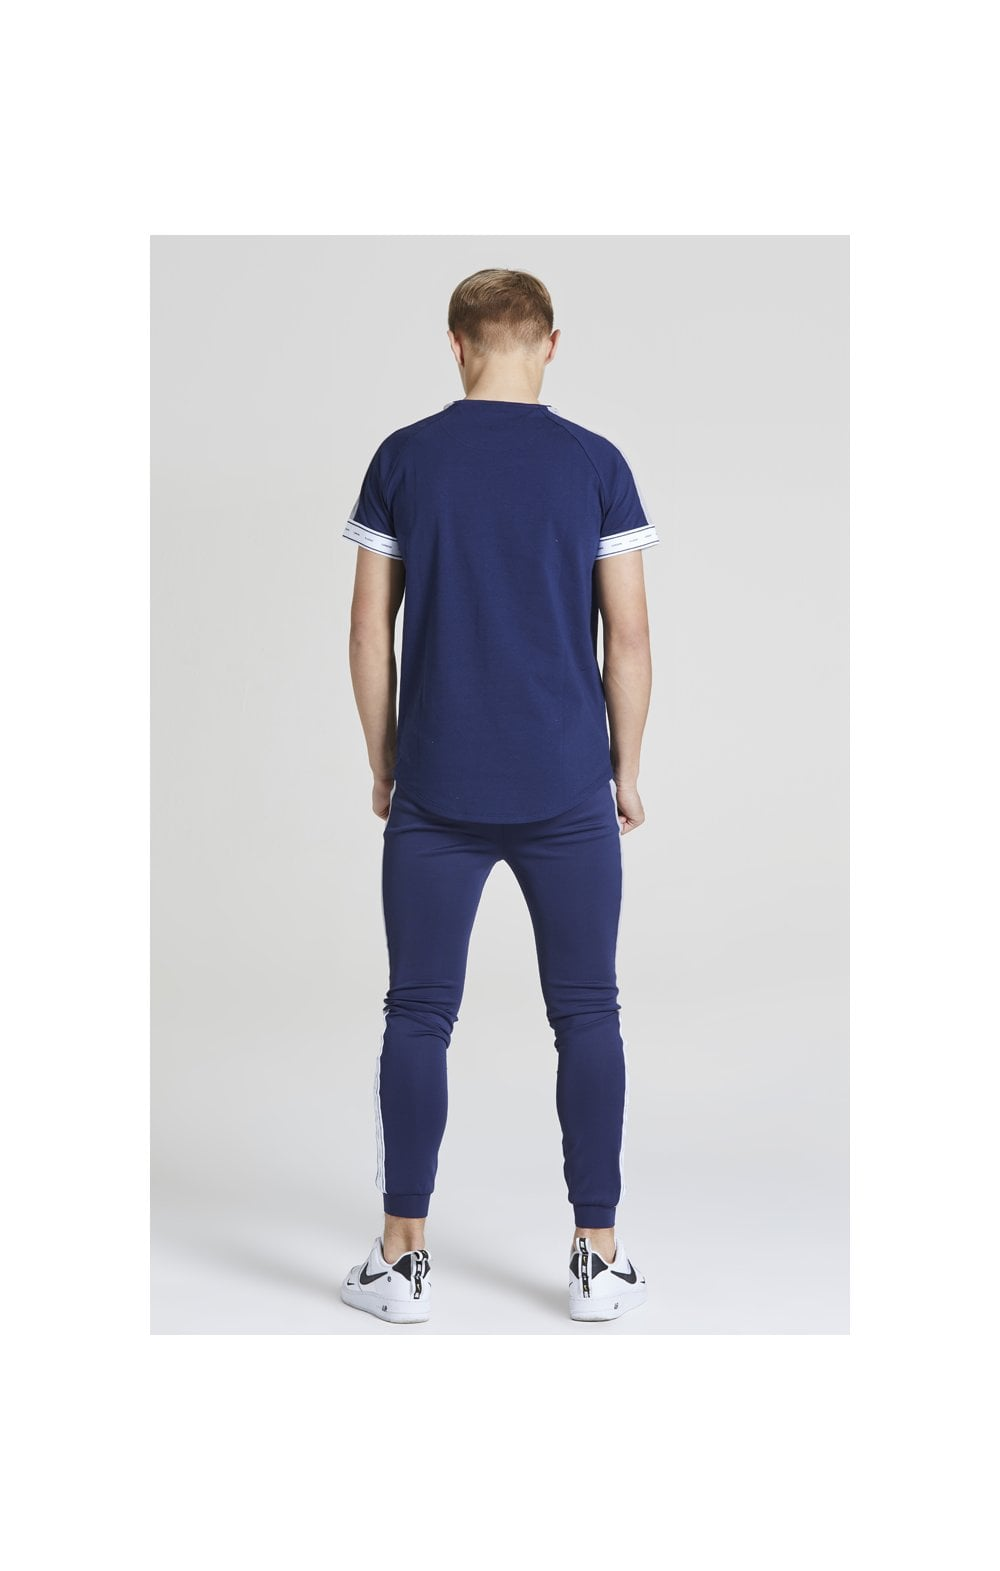 Load image into Gallery viewer, Illusive London Panel Tech Tee - Navy & Grey (4)